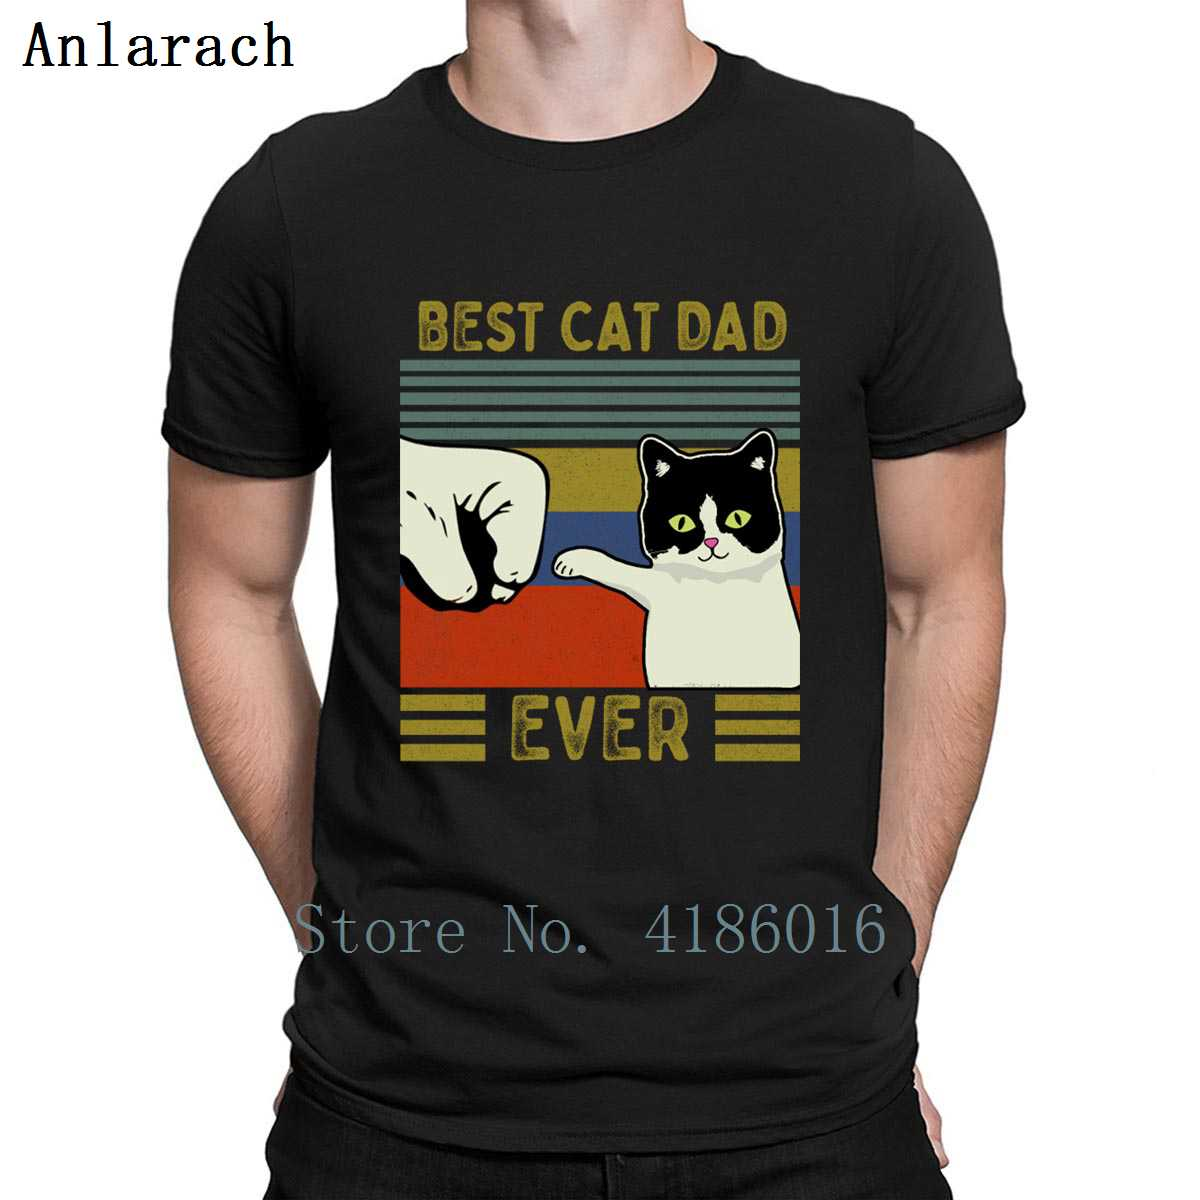 Vintage Best Cat Dad Ever Bump T Shirt Sunlight Leisure Cotton Spring Vintage S-4XL Personalized New Fashion Shirt